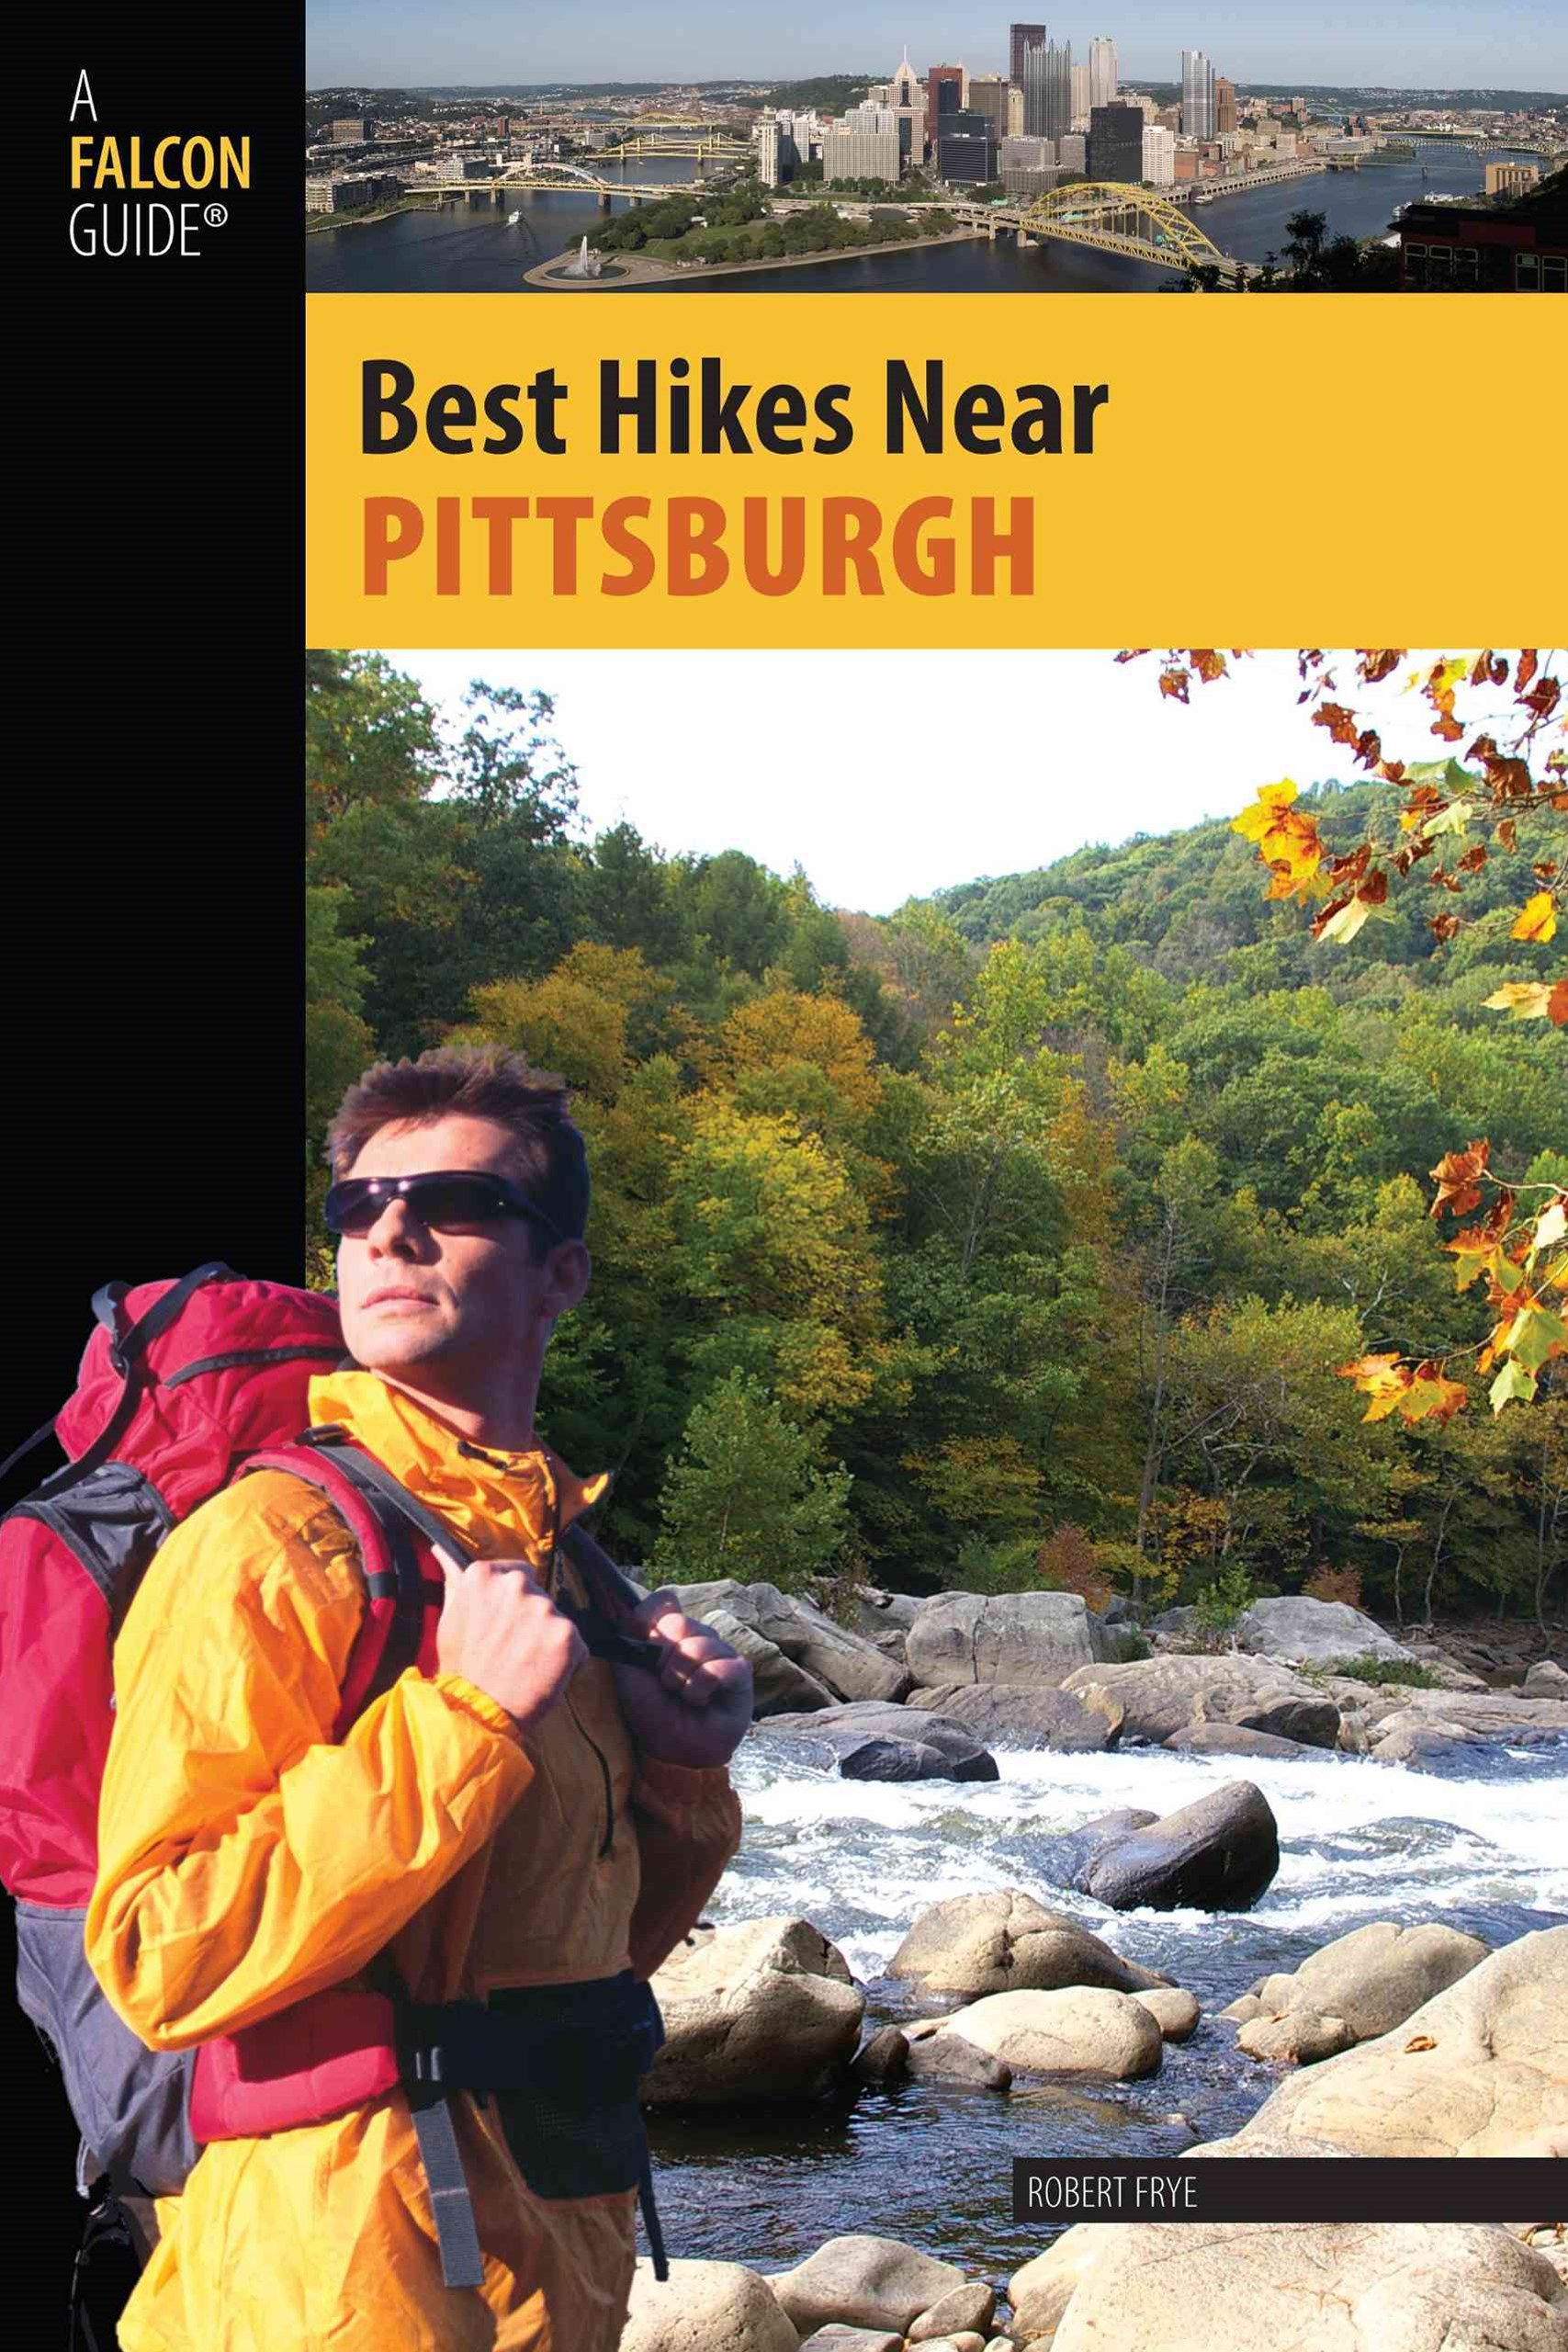 Best Hikes Near Pittsburgh